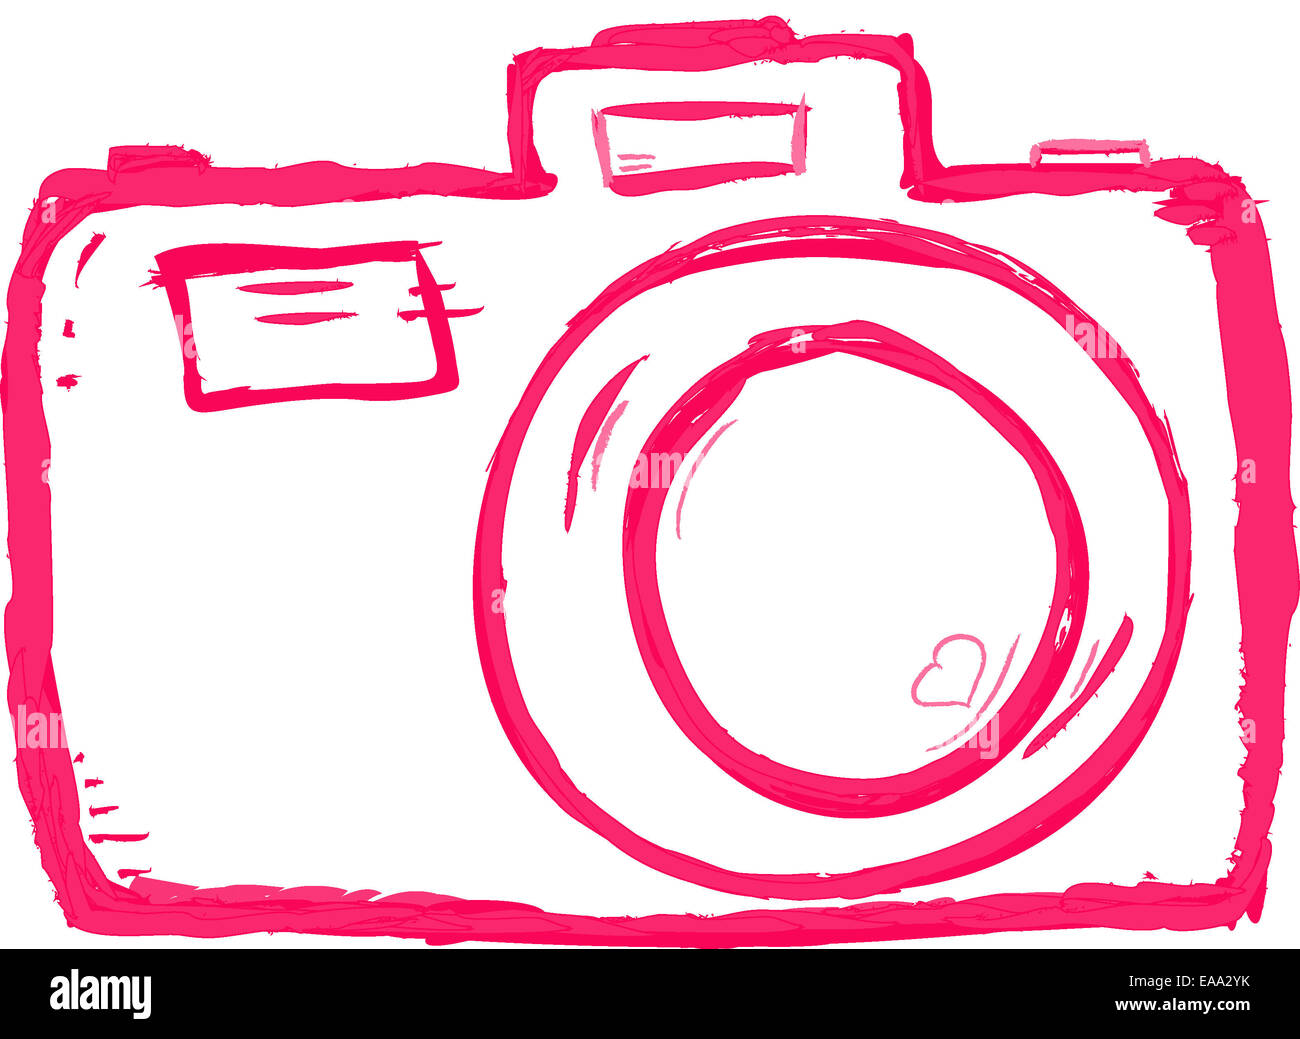 Camera hand drawn on white background - Stock Image